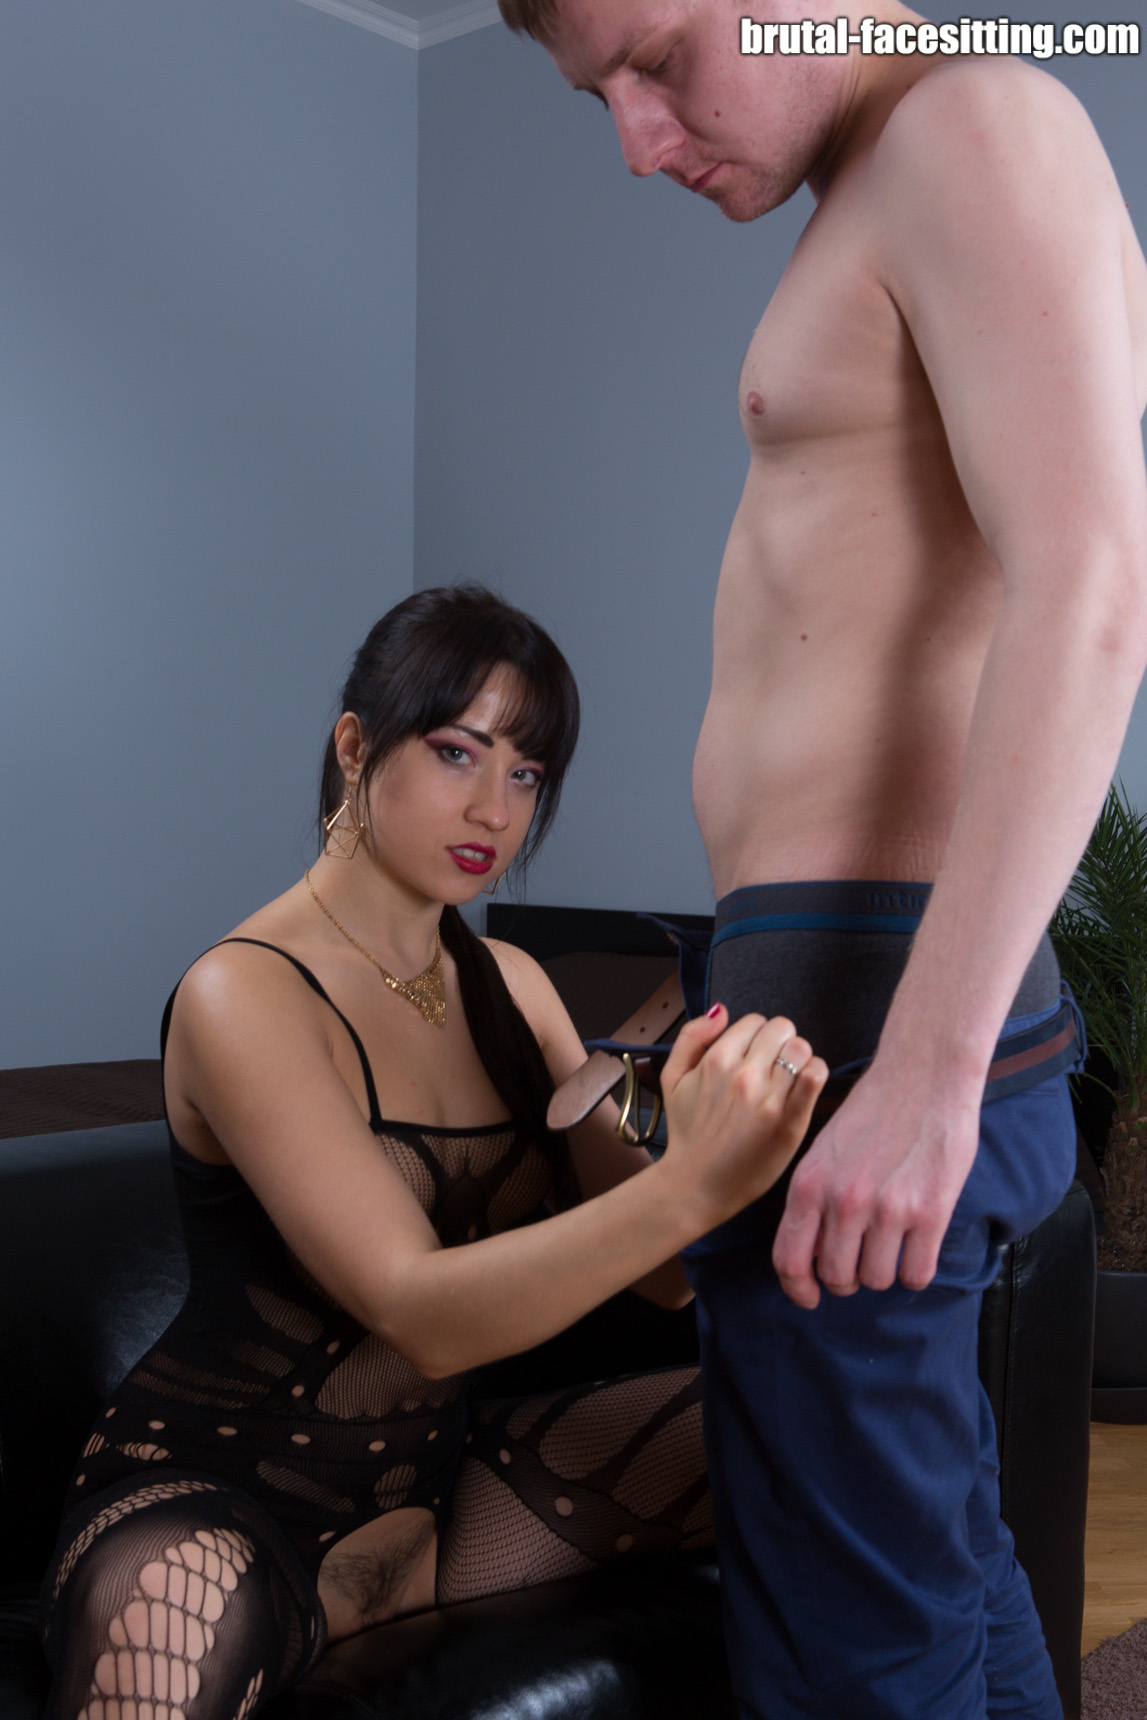 Black-haired dominant woman undressing pants from slave